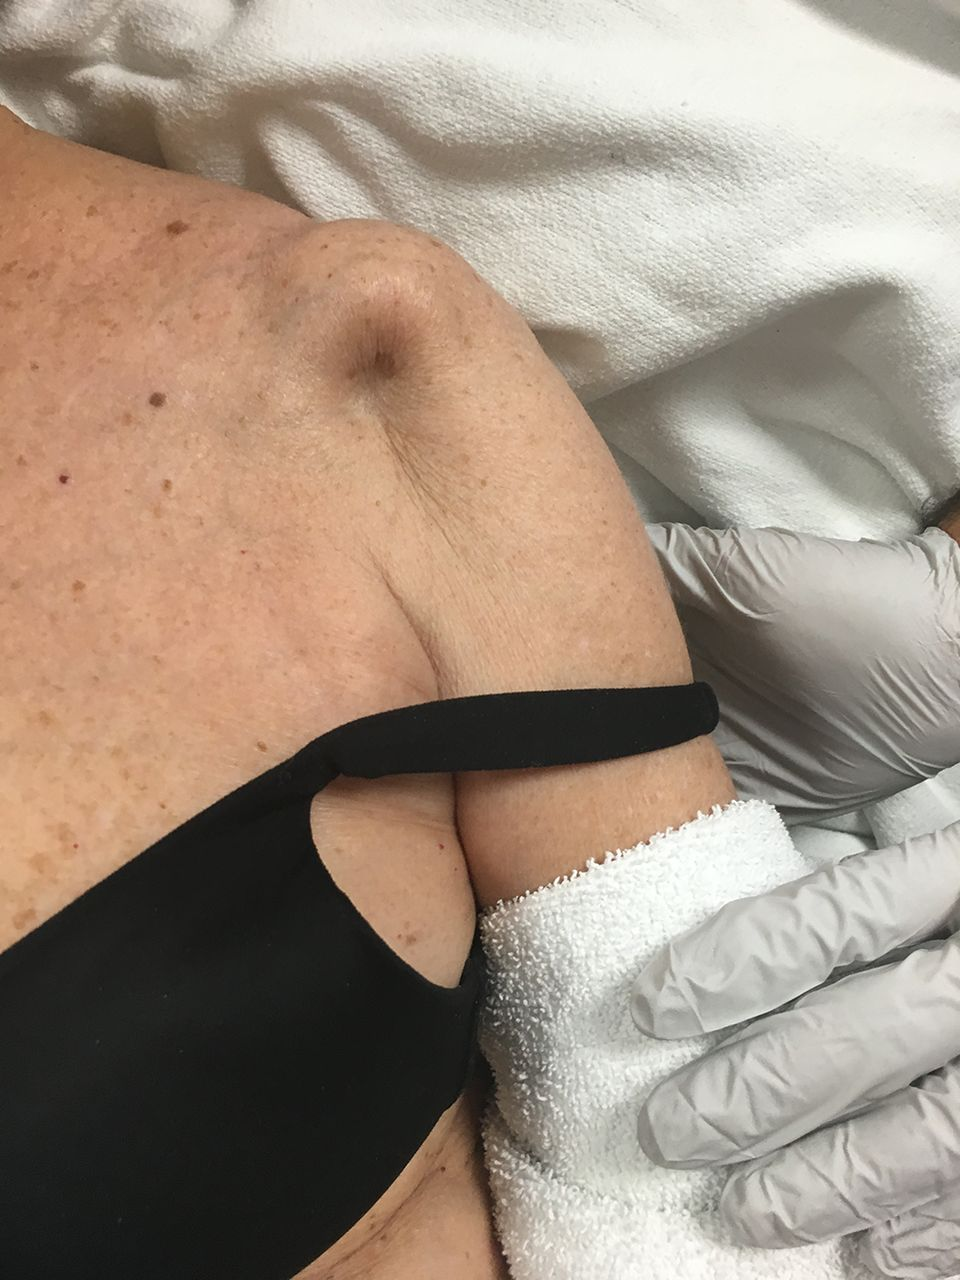 Dimple On The Shoulder After A Ski Injury Emergency